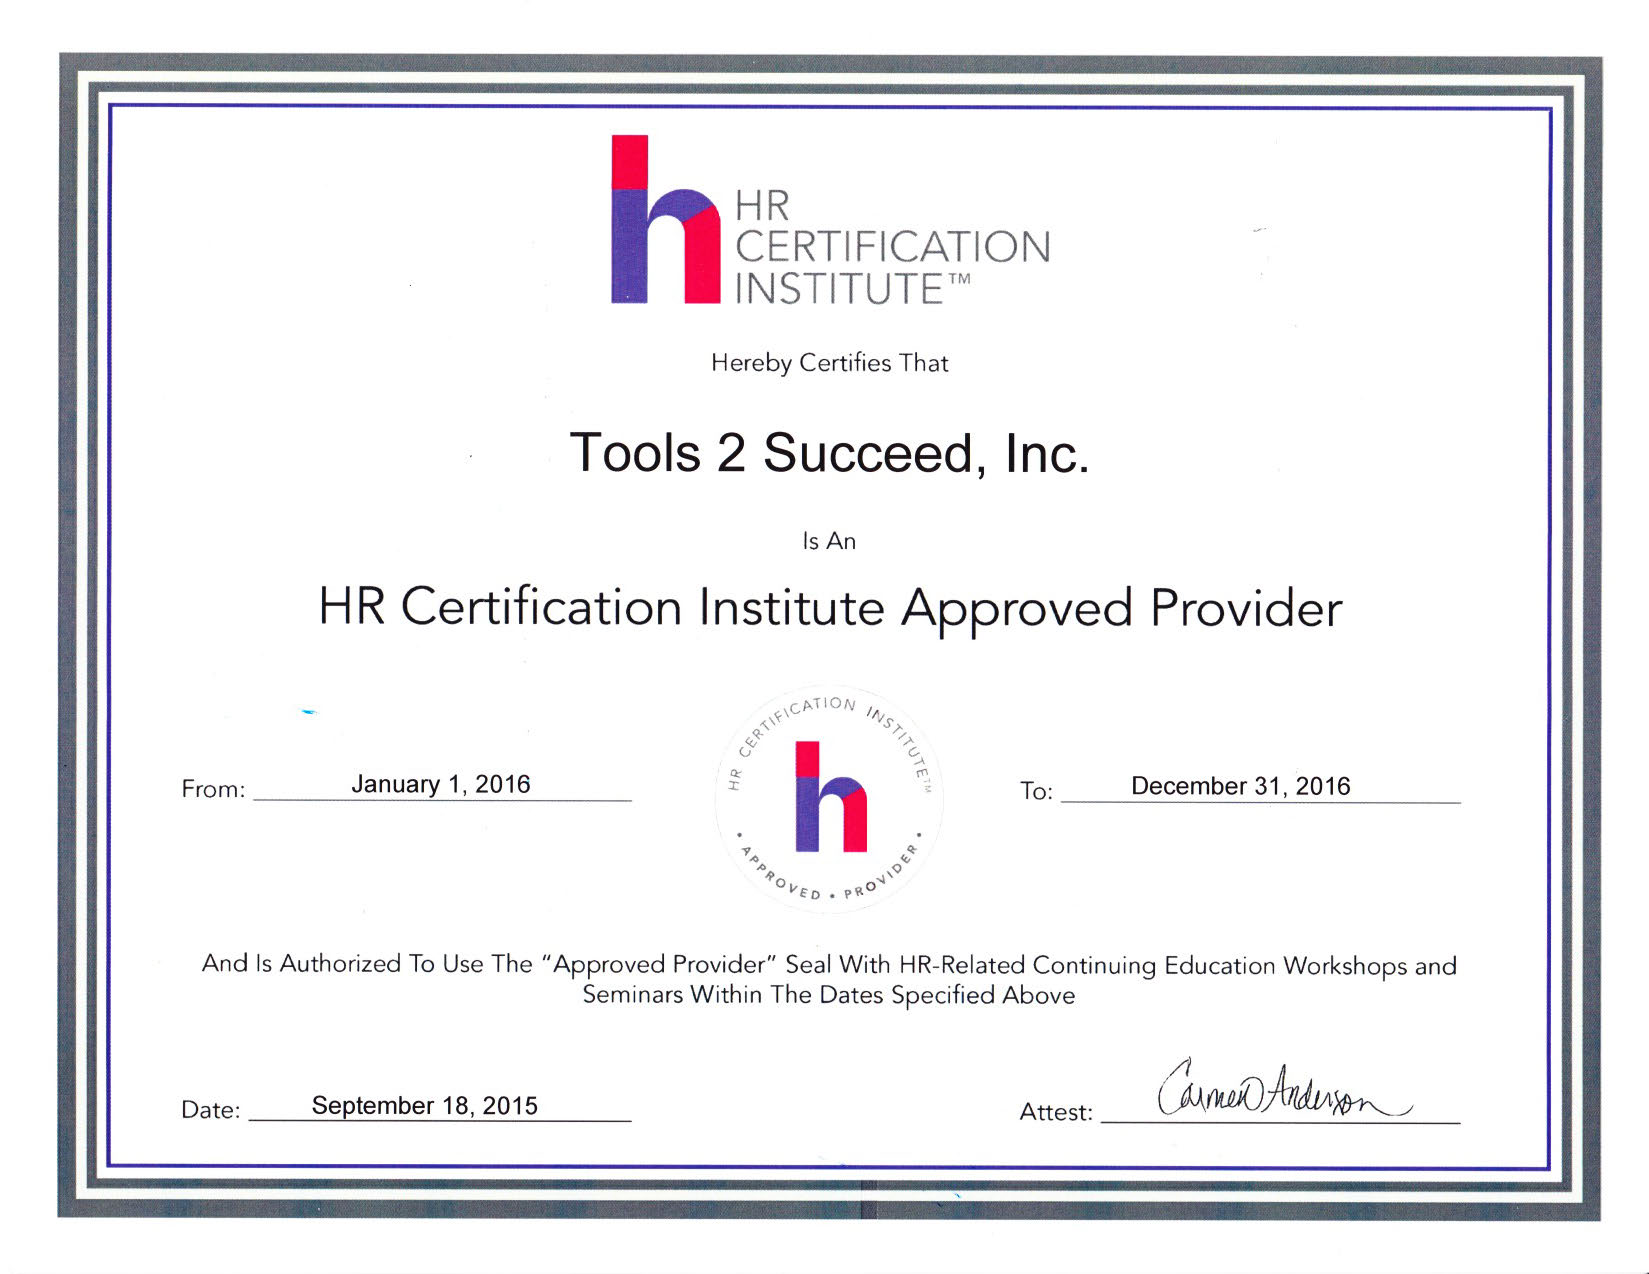 Tools 2 succeed inc renews hr certification institute approved tools 2 succeed 2016 hrci approved provider certificate 1betcityfo Choice Image